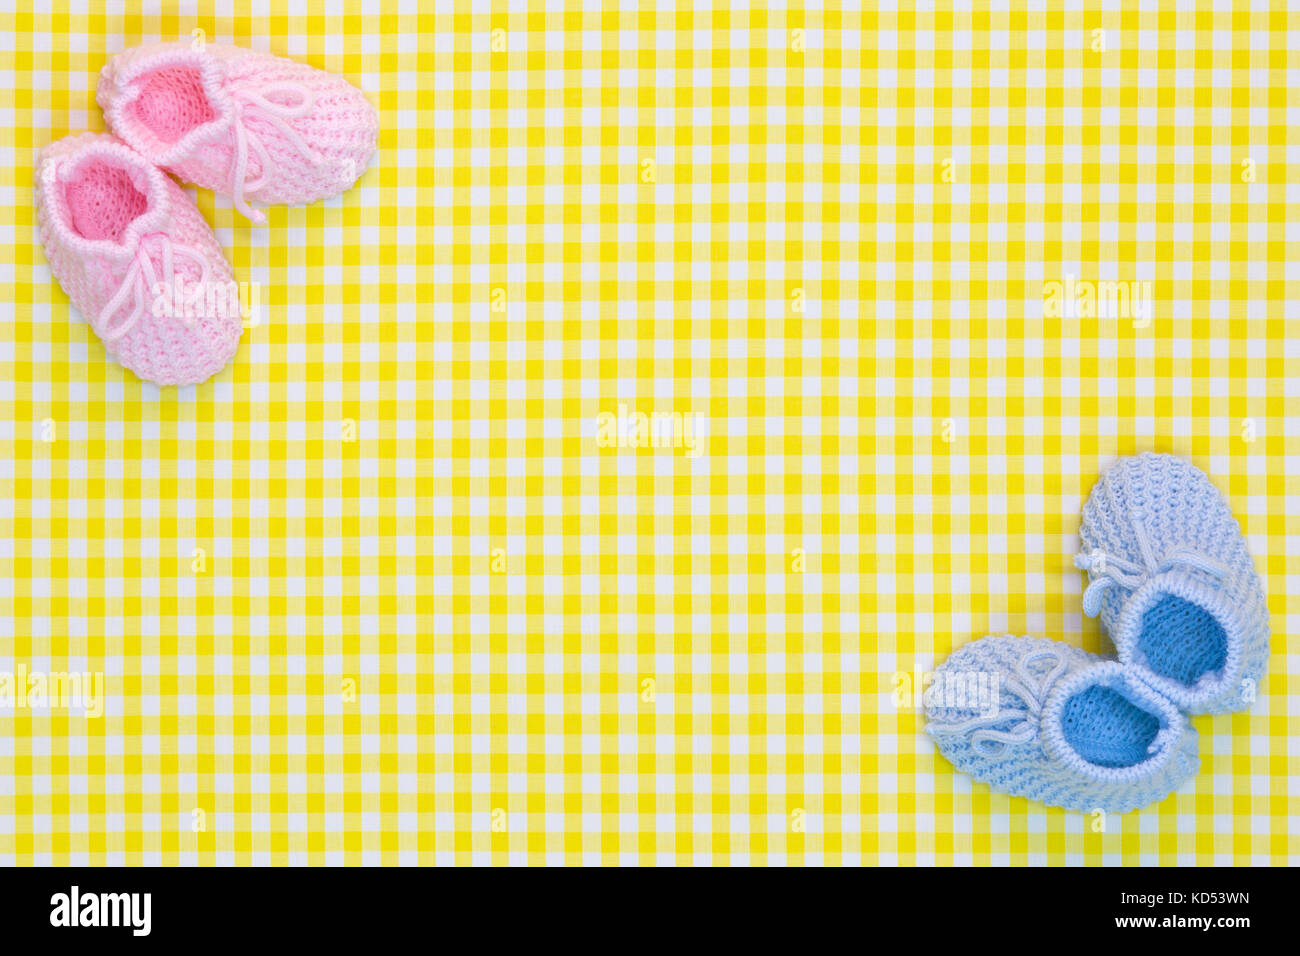 Kinitted Baby booties for a girl and a boy on a yellow gingham background. - Stock Image